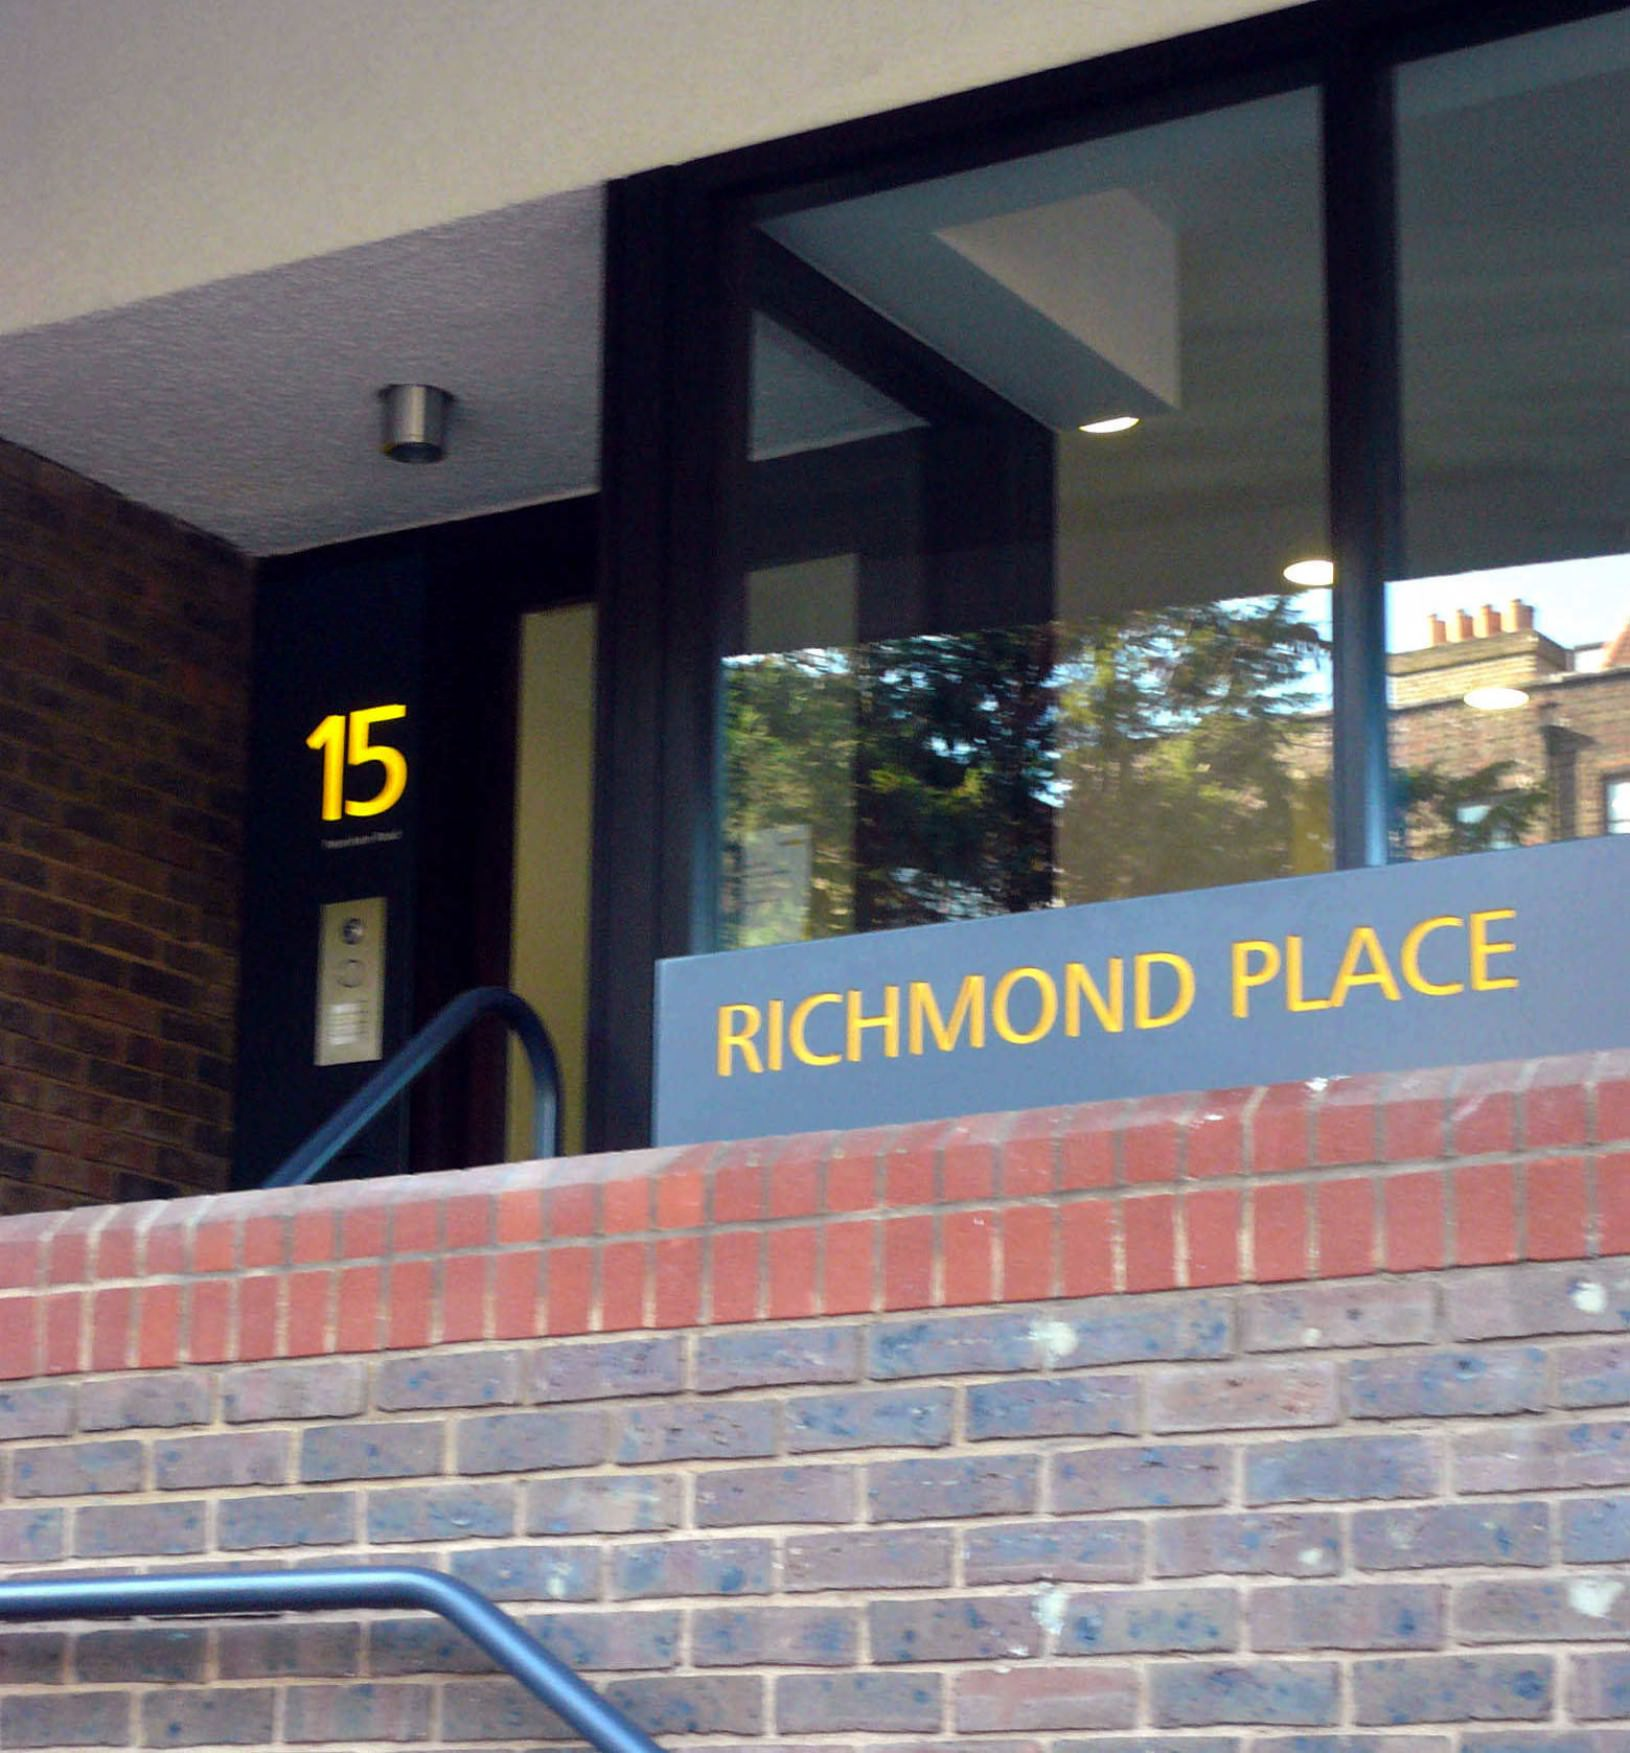 Richmond Place illuminated sign 15